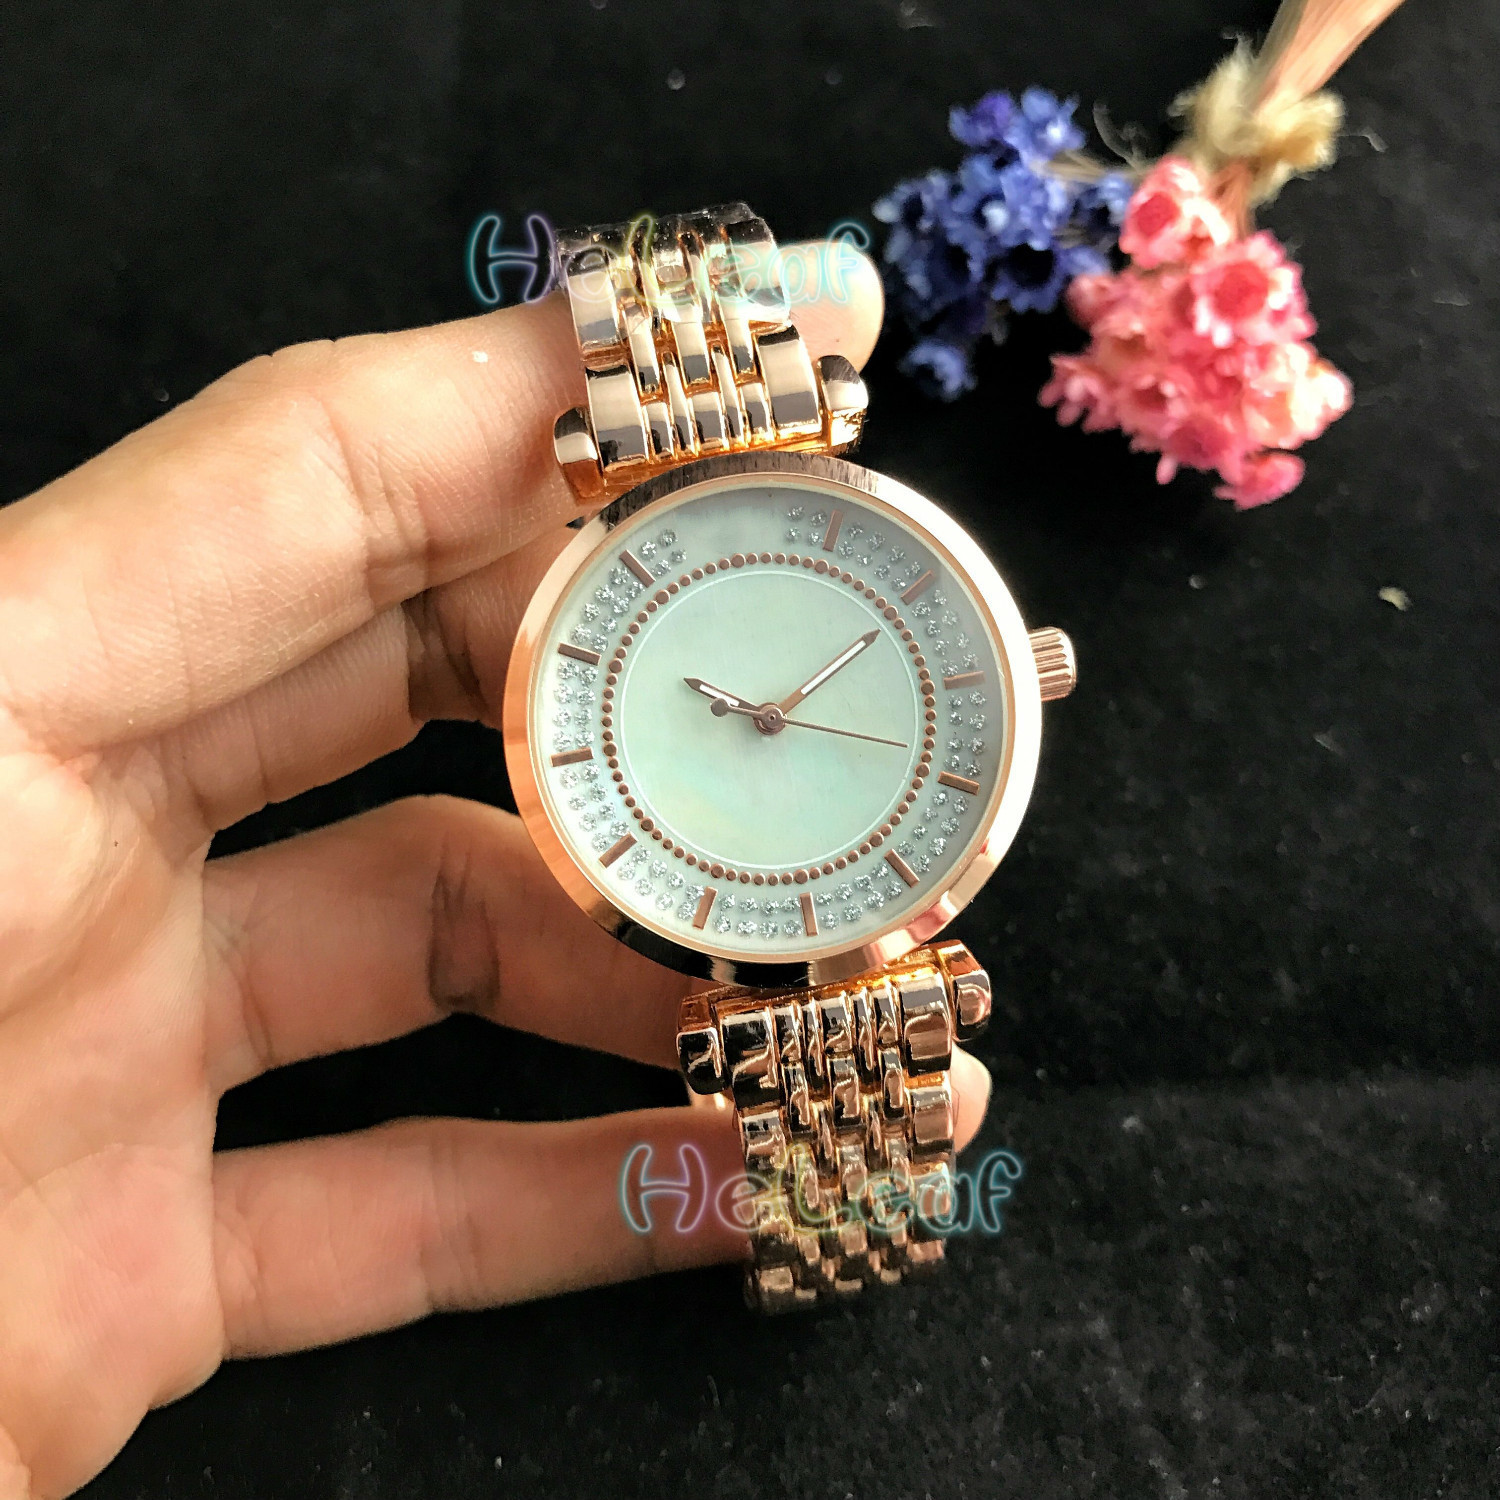 Luxury Fashion Women Watches Silver Gold Round Stainless Steel Band Quartz Watch MANI Female Clock Montre Femme Relogio Feminino